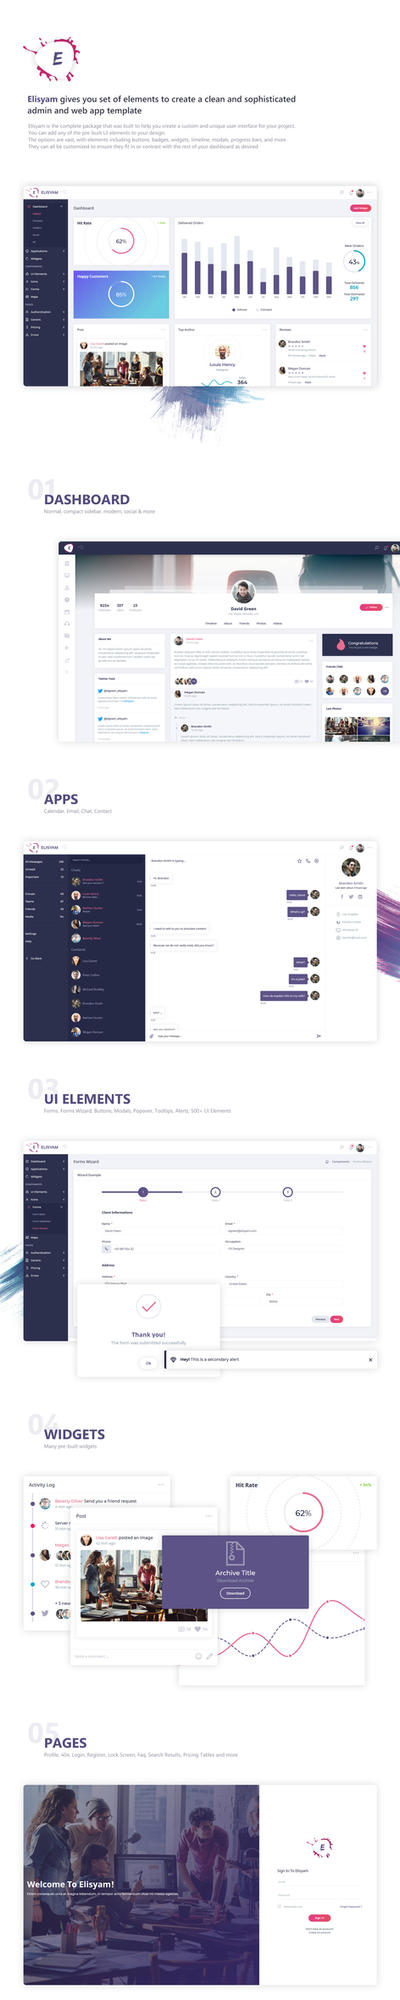 Elisyam - Web App and Admin Dashboard Template by DSaerox